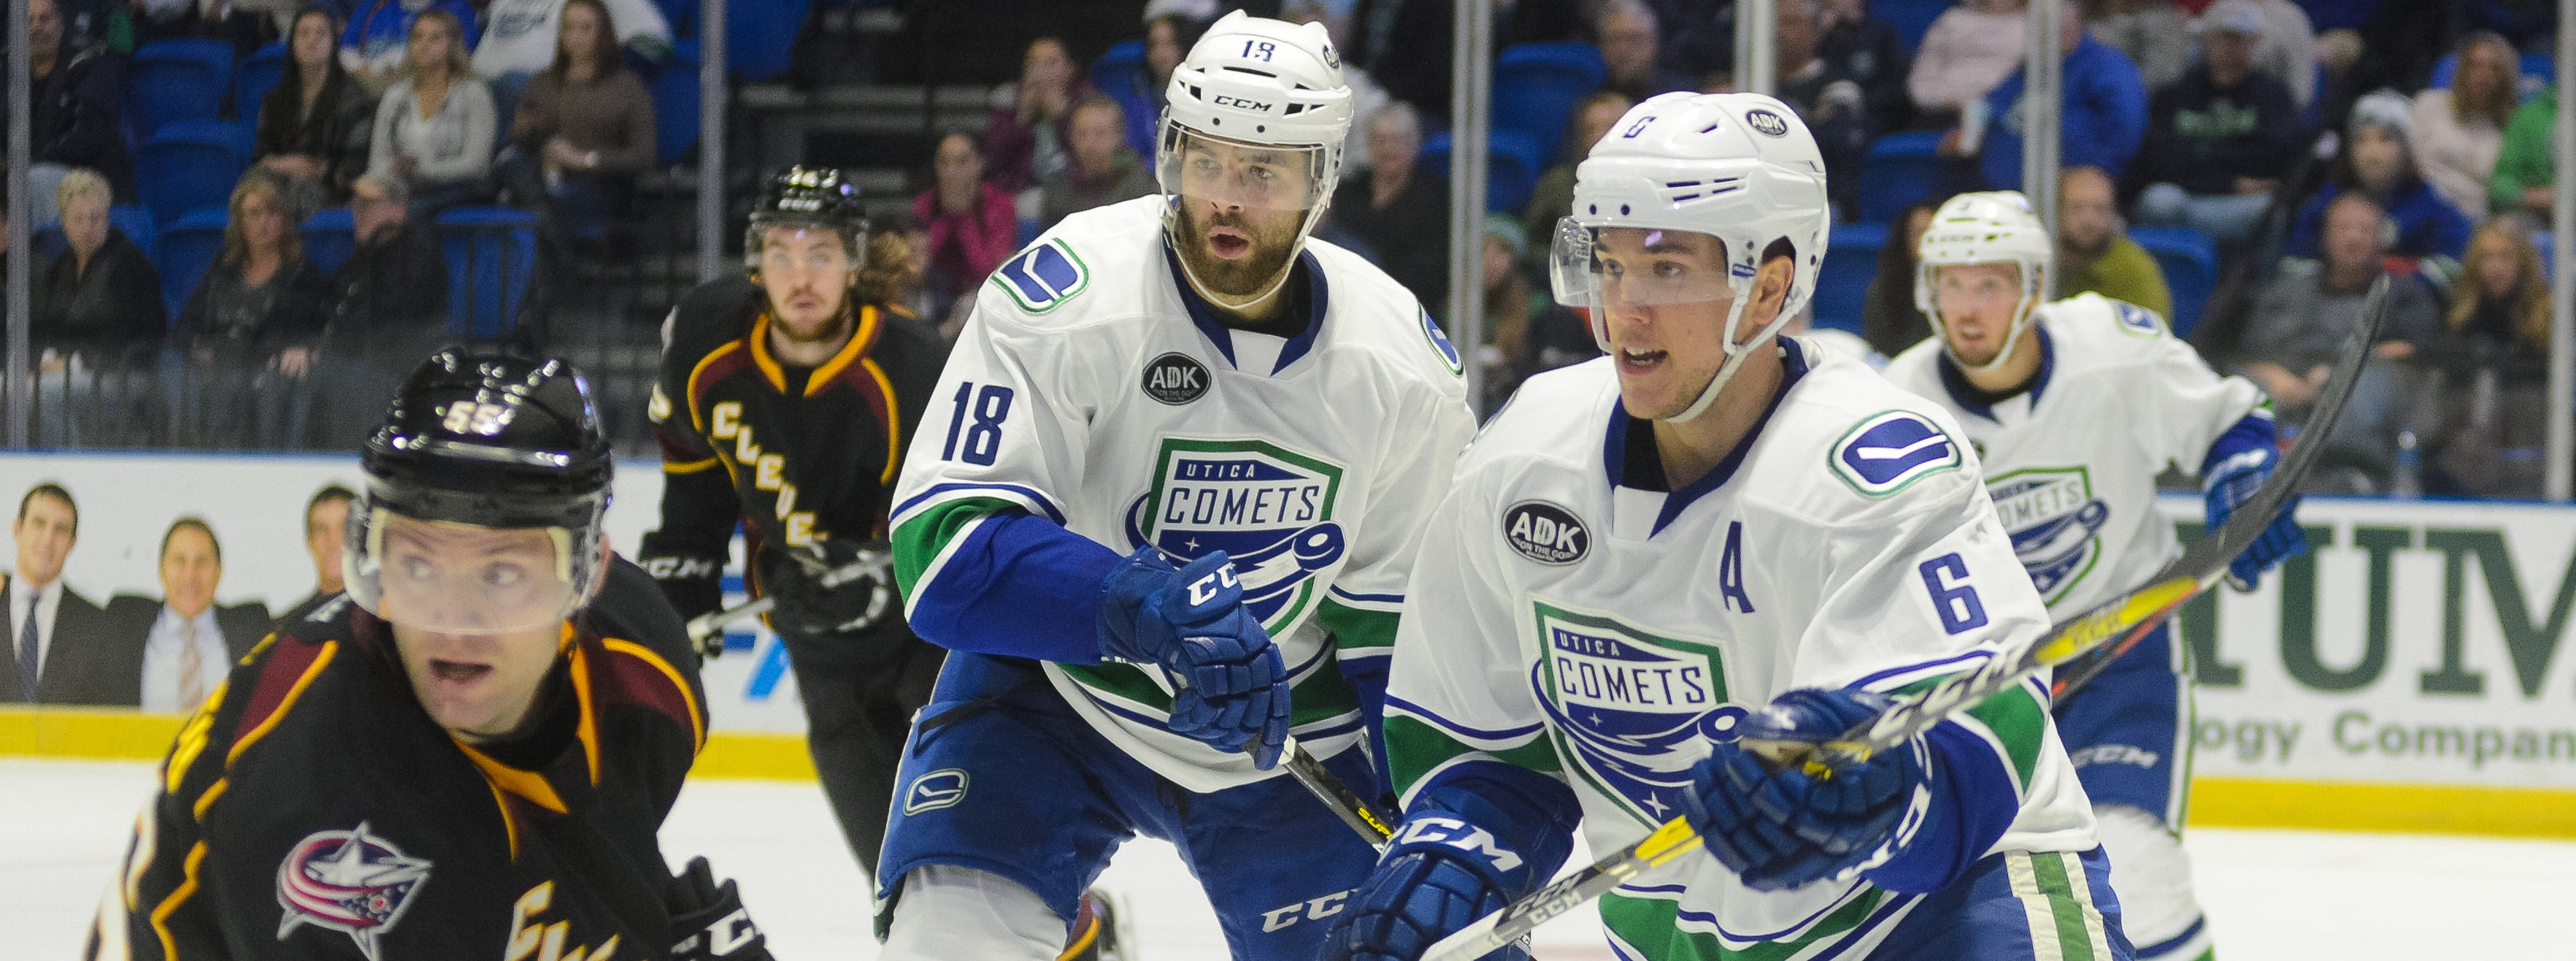 COMETS FACE MONSTERS IN SUNDAY MATINEE